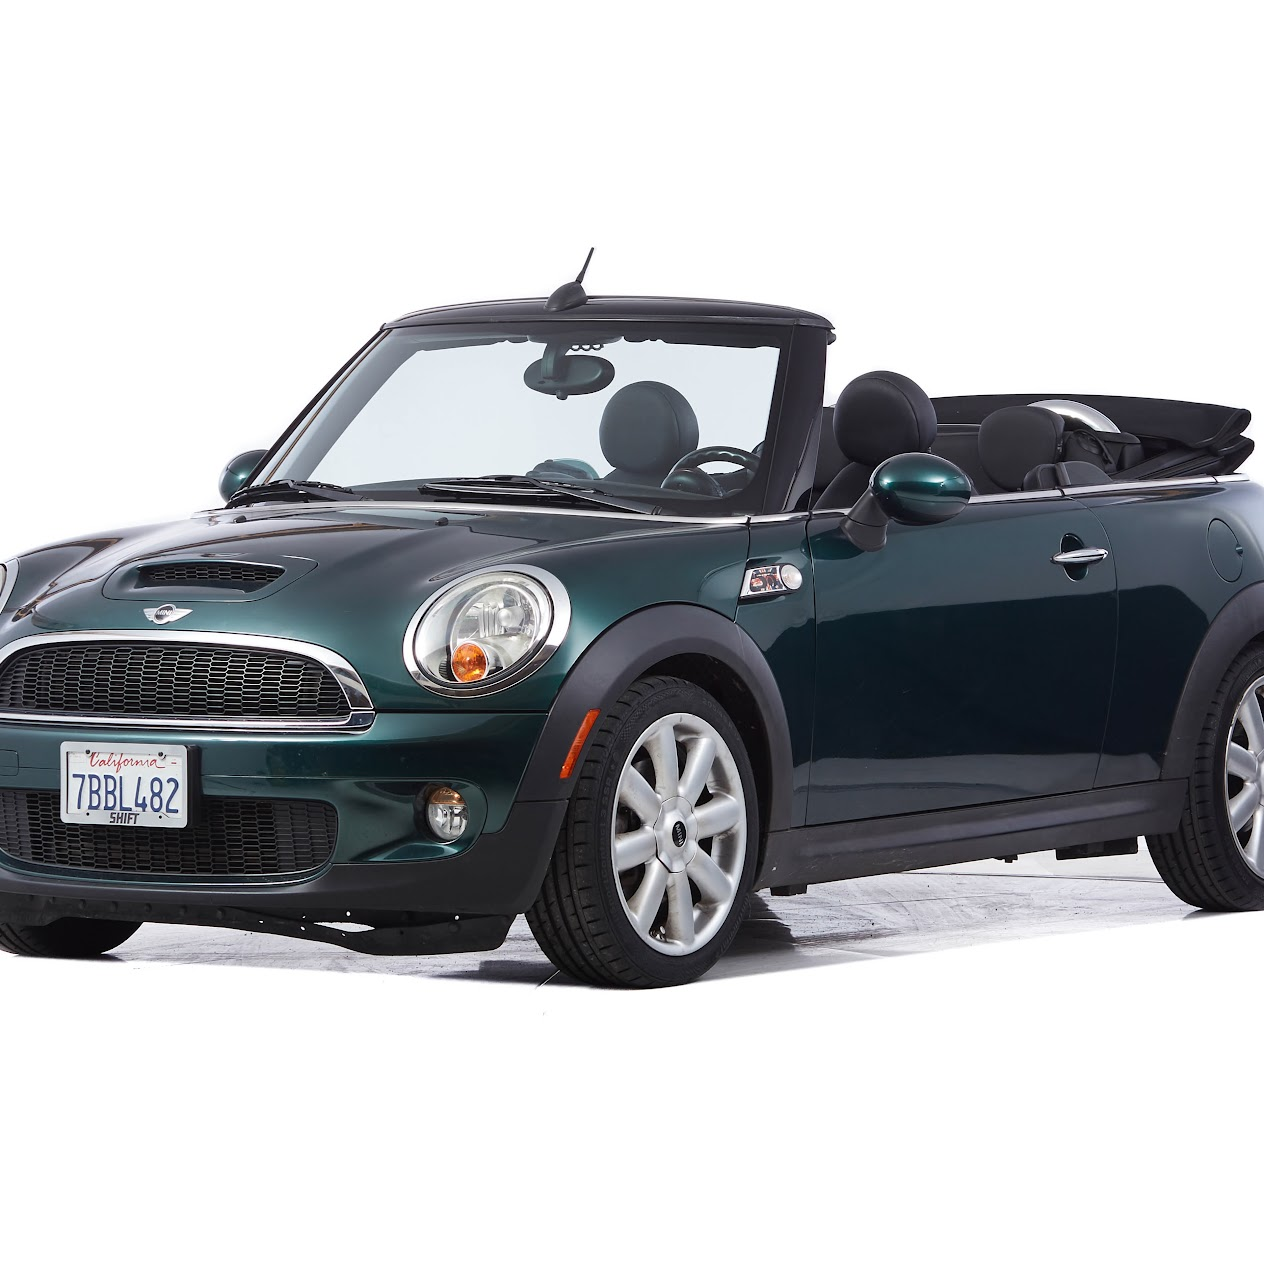 Stevens Creek Mini >> MINI in San Francisco | Drive Local | Shift